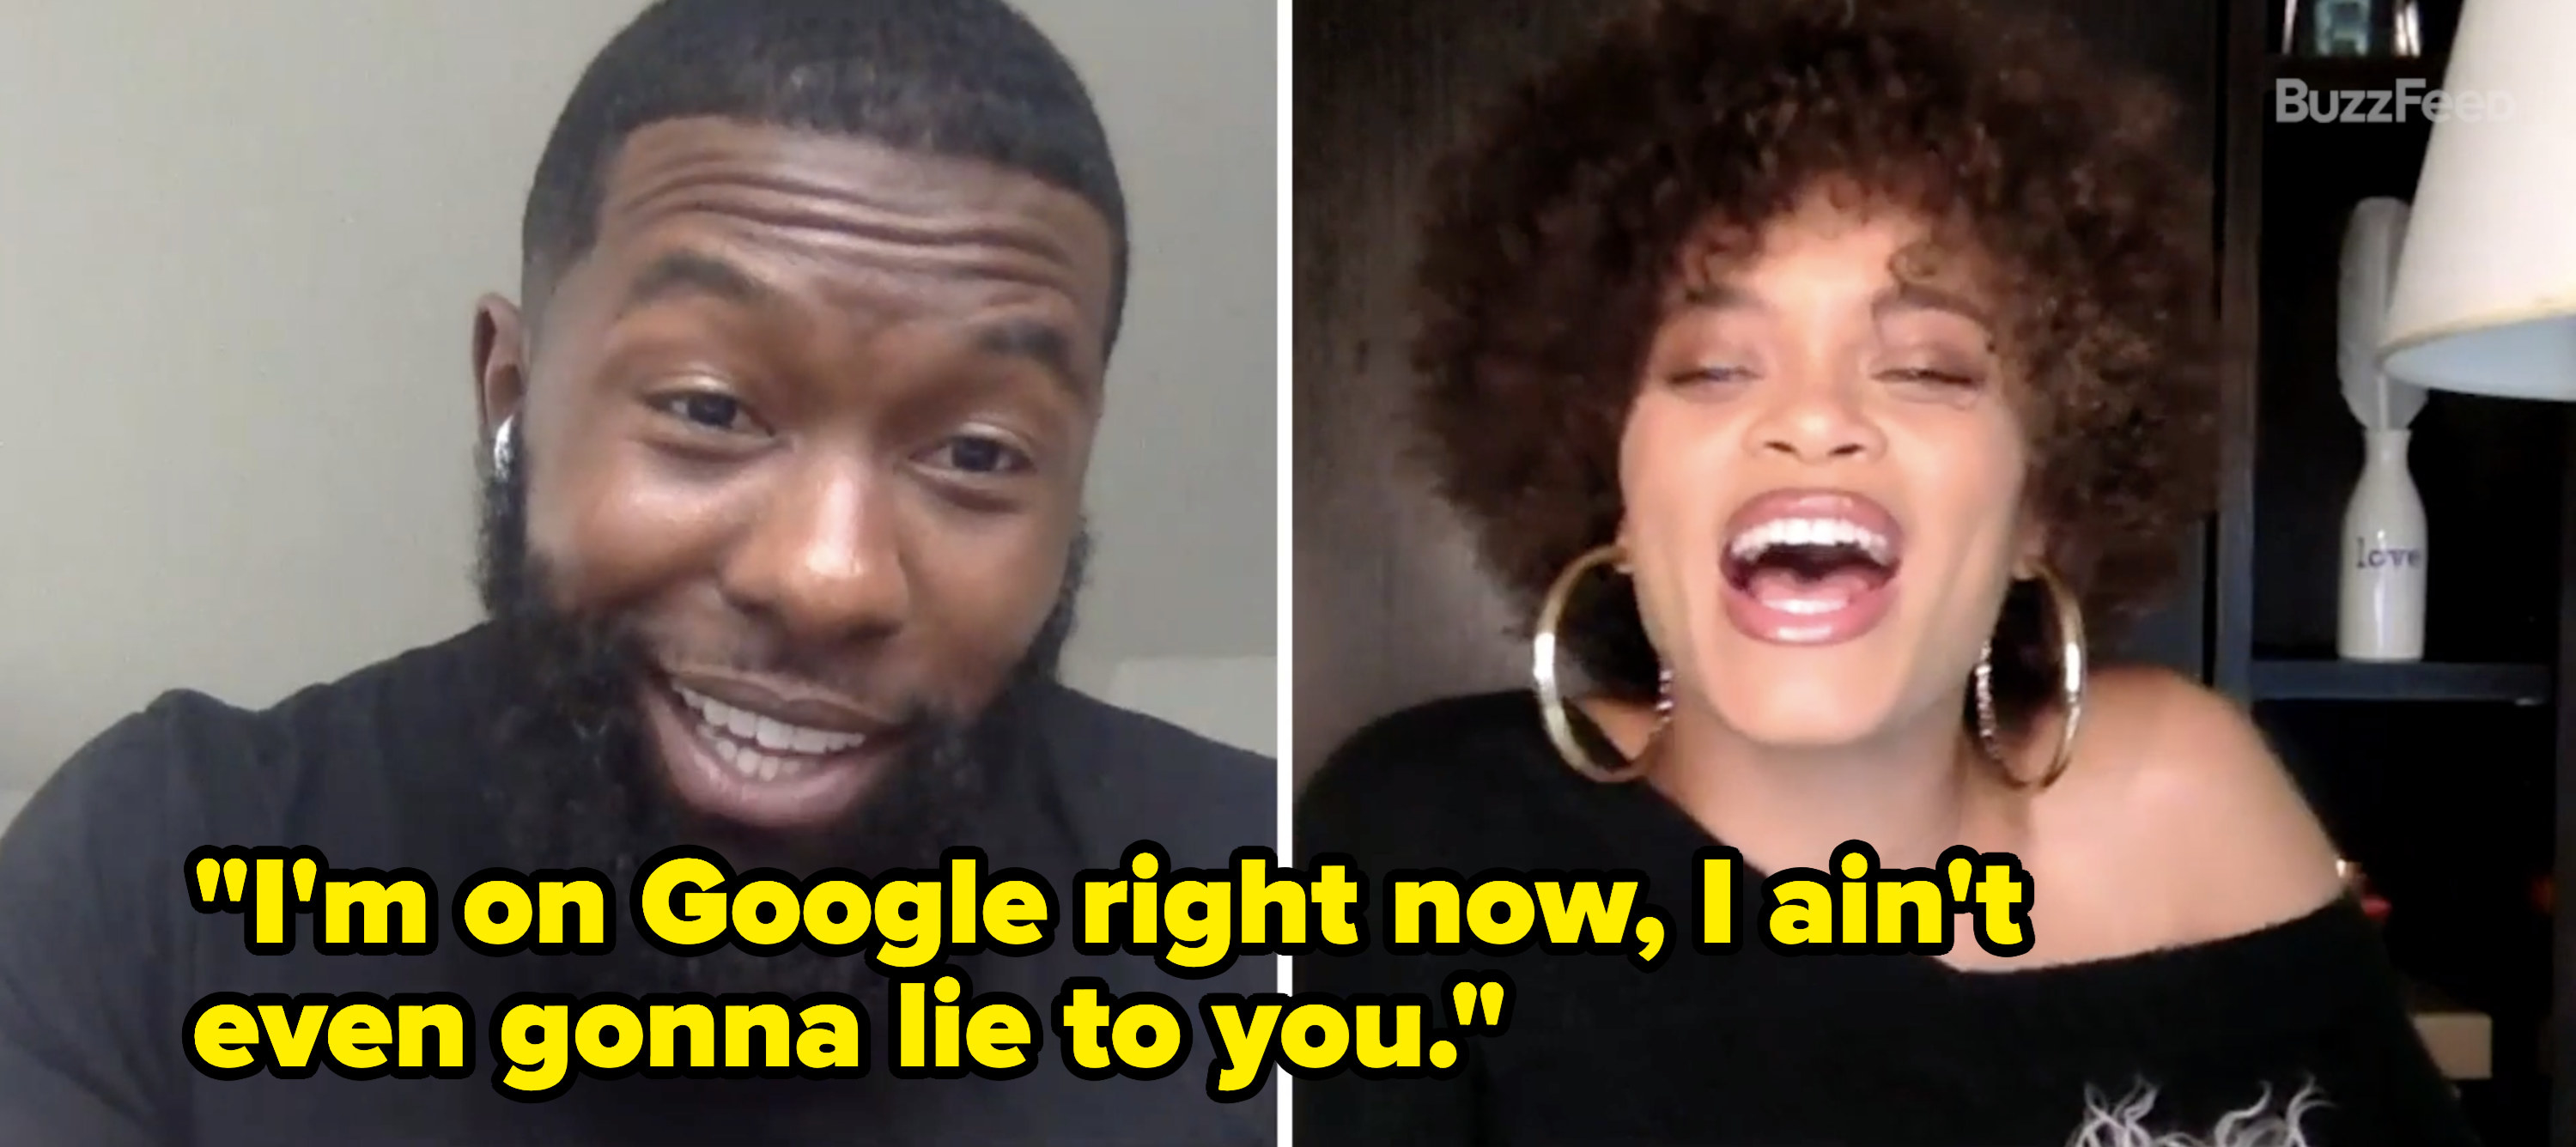 "Trevante says, ""I'm on Google right now, I ain't even gonna lie to you"""